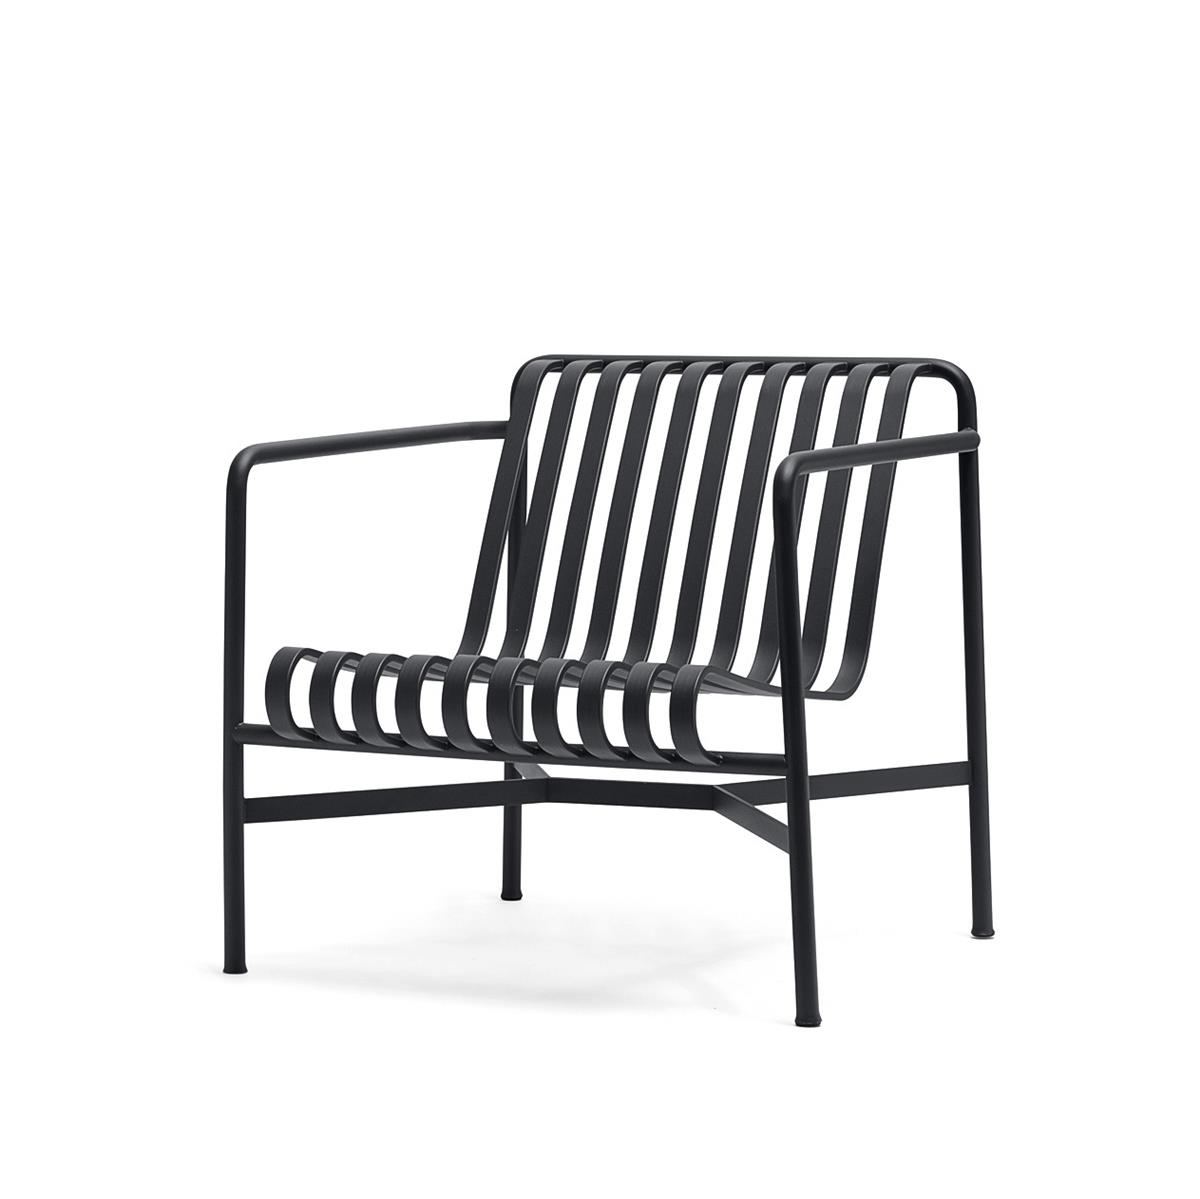 Palissade Lounge Chair Low - Anthracite